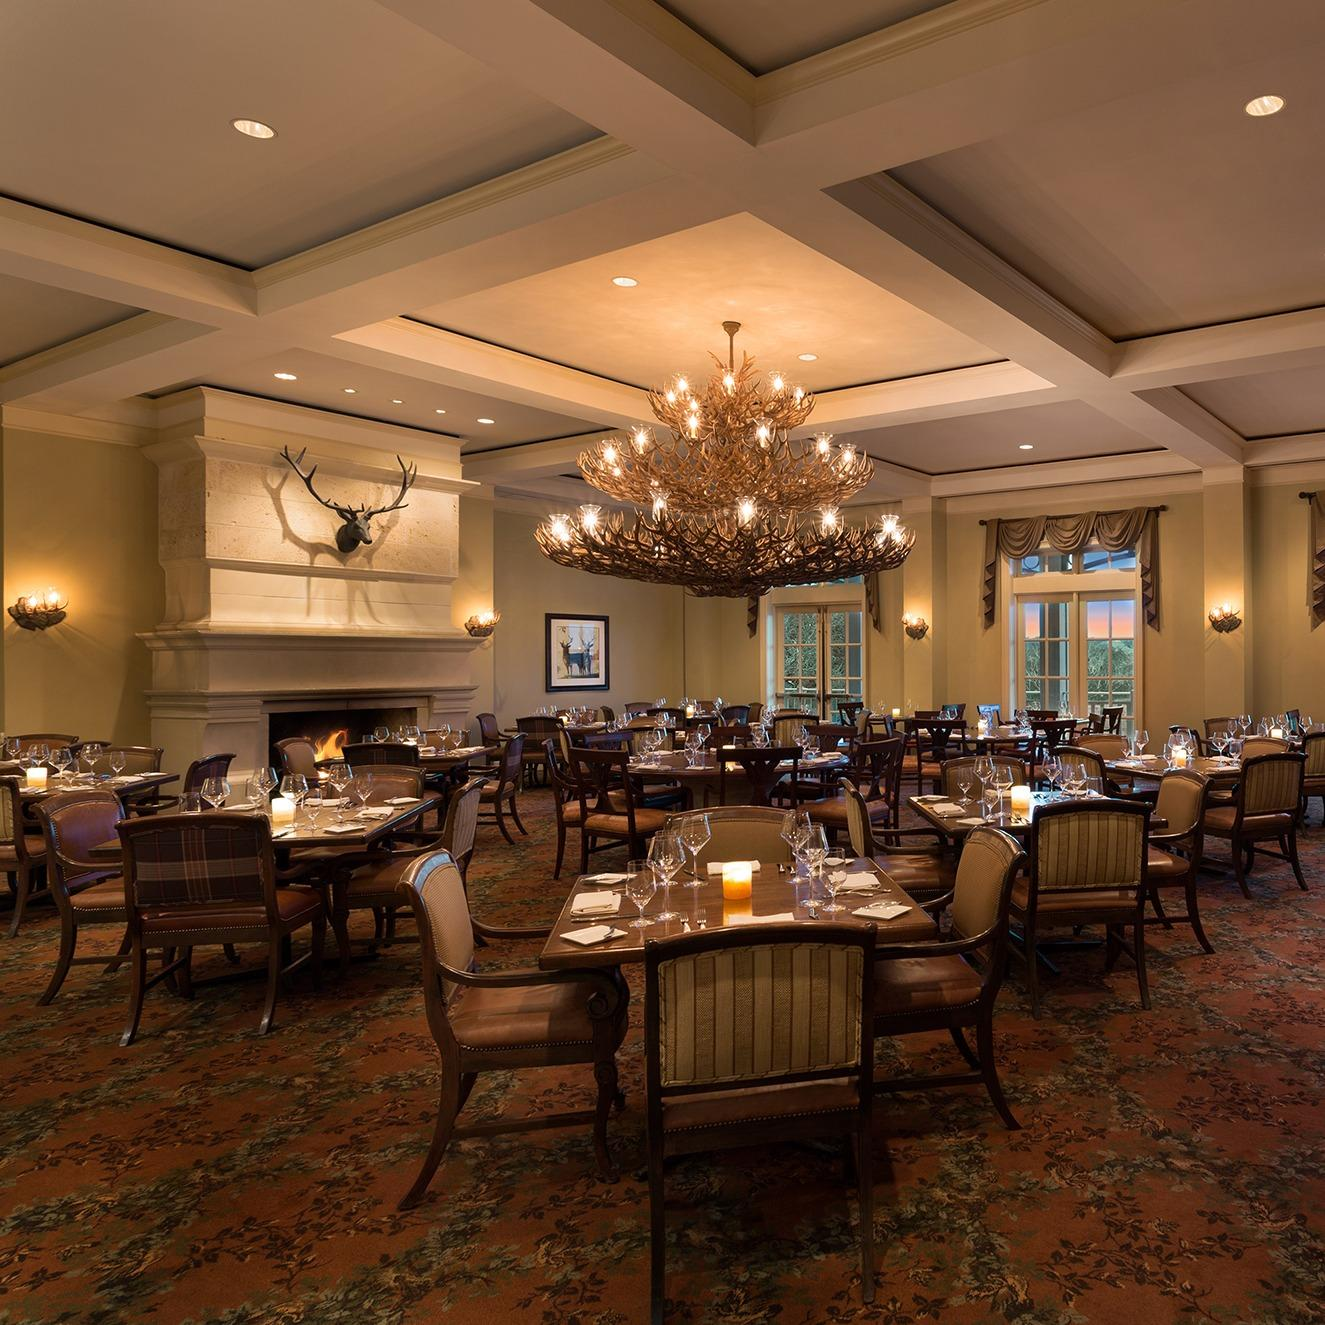 Restaurant in TX San Antonio 78251 Antler's Lodge Restaurant 9800 Hyatt Resort Drive  (210)520-4001